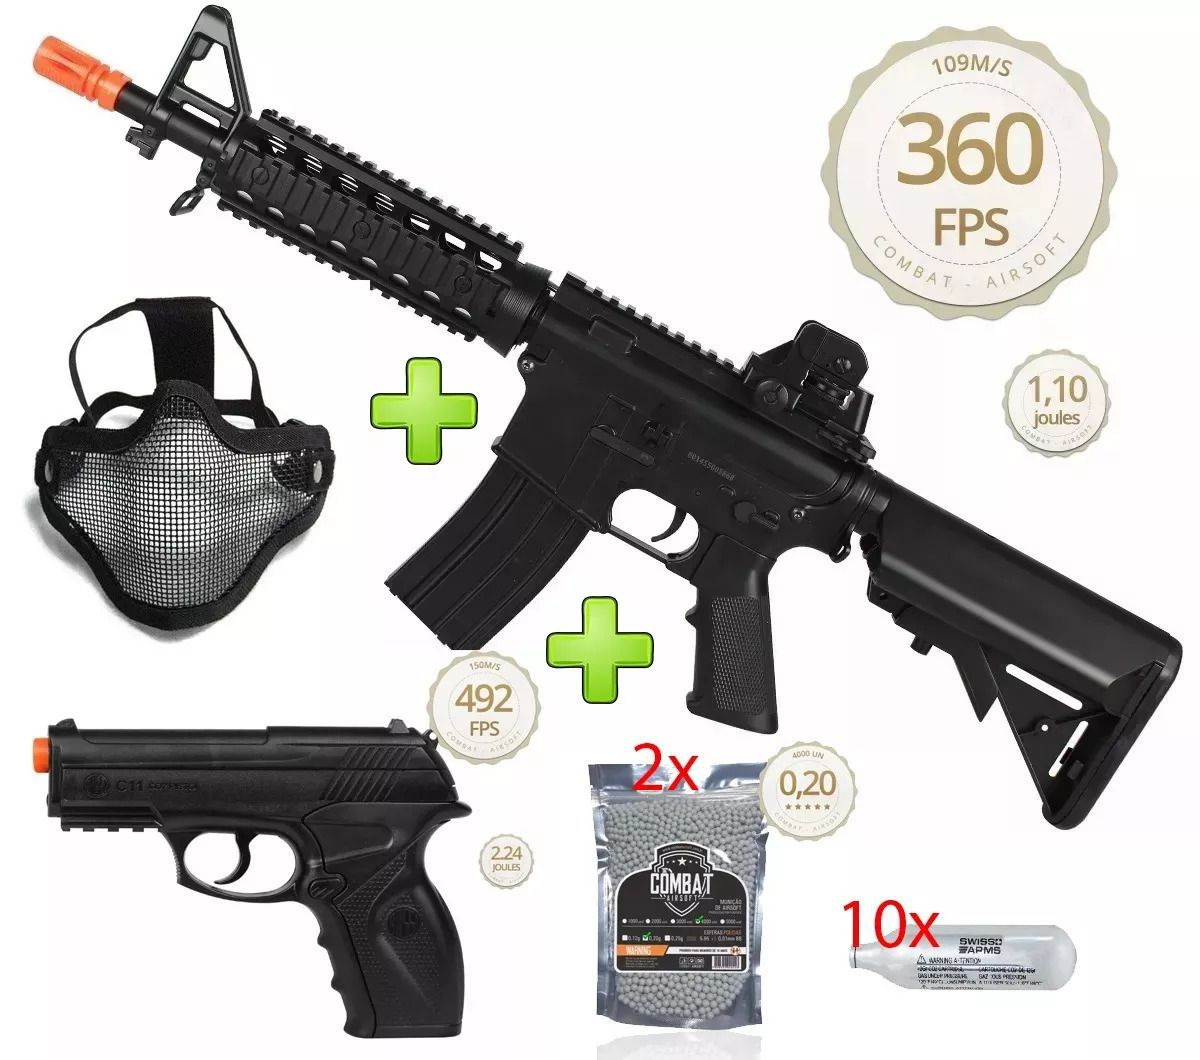 Kit Fighter Rifle Airsoft Elétrico M4a1 Cm506 + Rossi C11